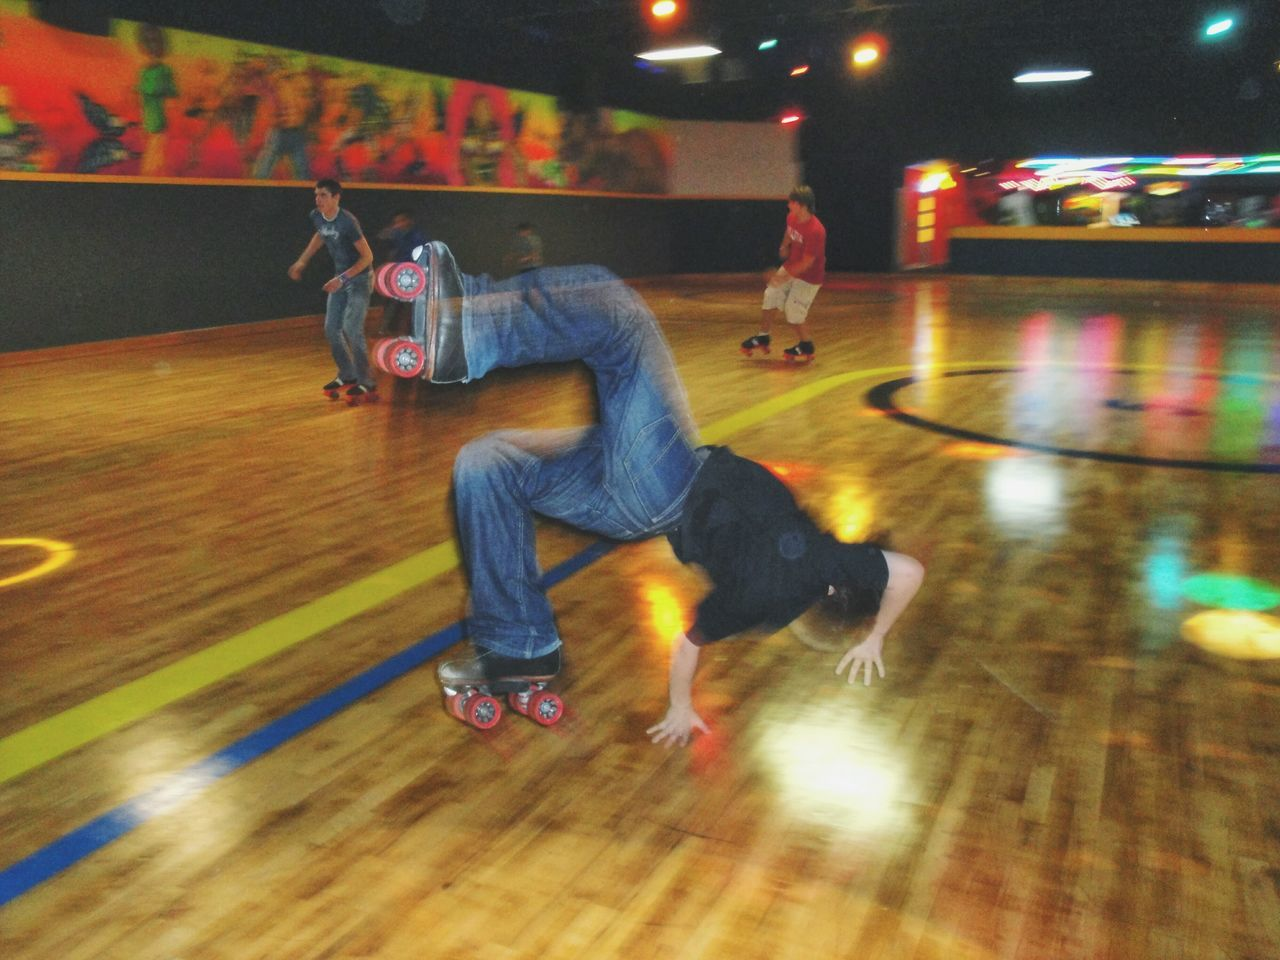 Gettin' tricky Jam Skating Roller Skating Photography In Motion Wood Floor Tricks Hand Stand  Jumping Flipping Twisting Tricky Motion Blur Action Shot  Neon Lights First Eyeem Photo Things I Like Alternative Fitness